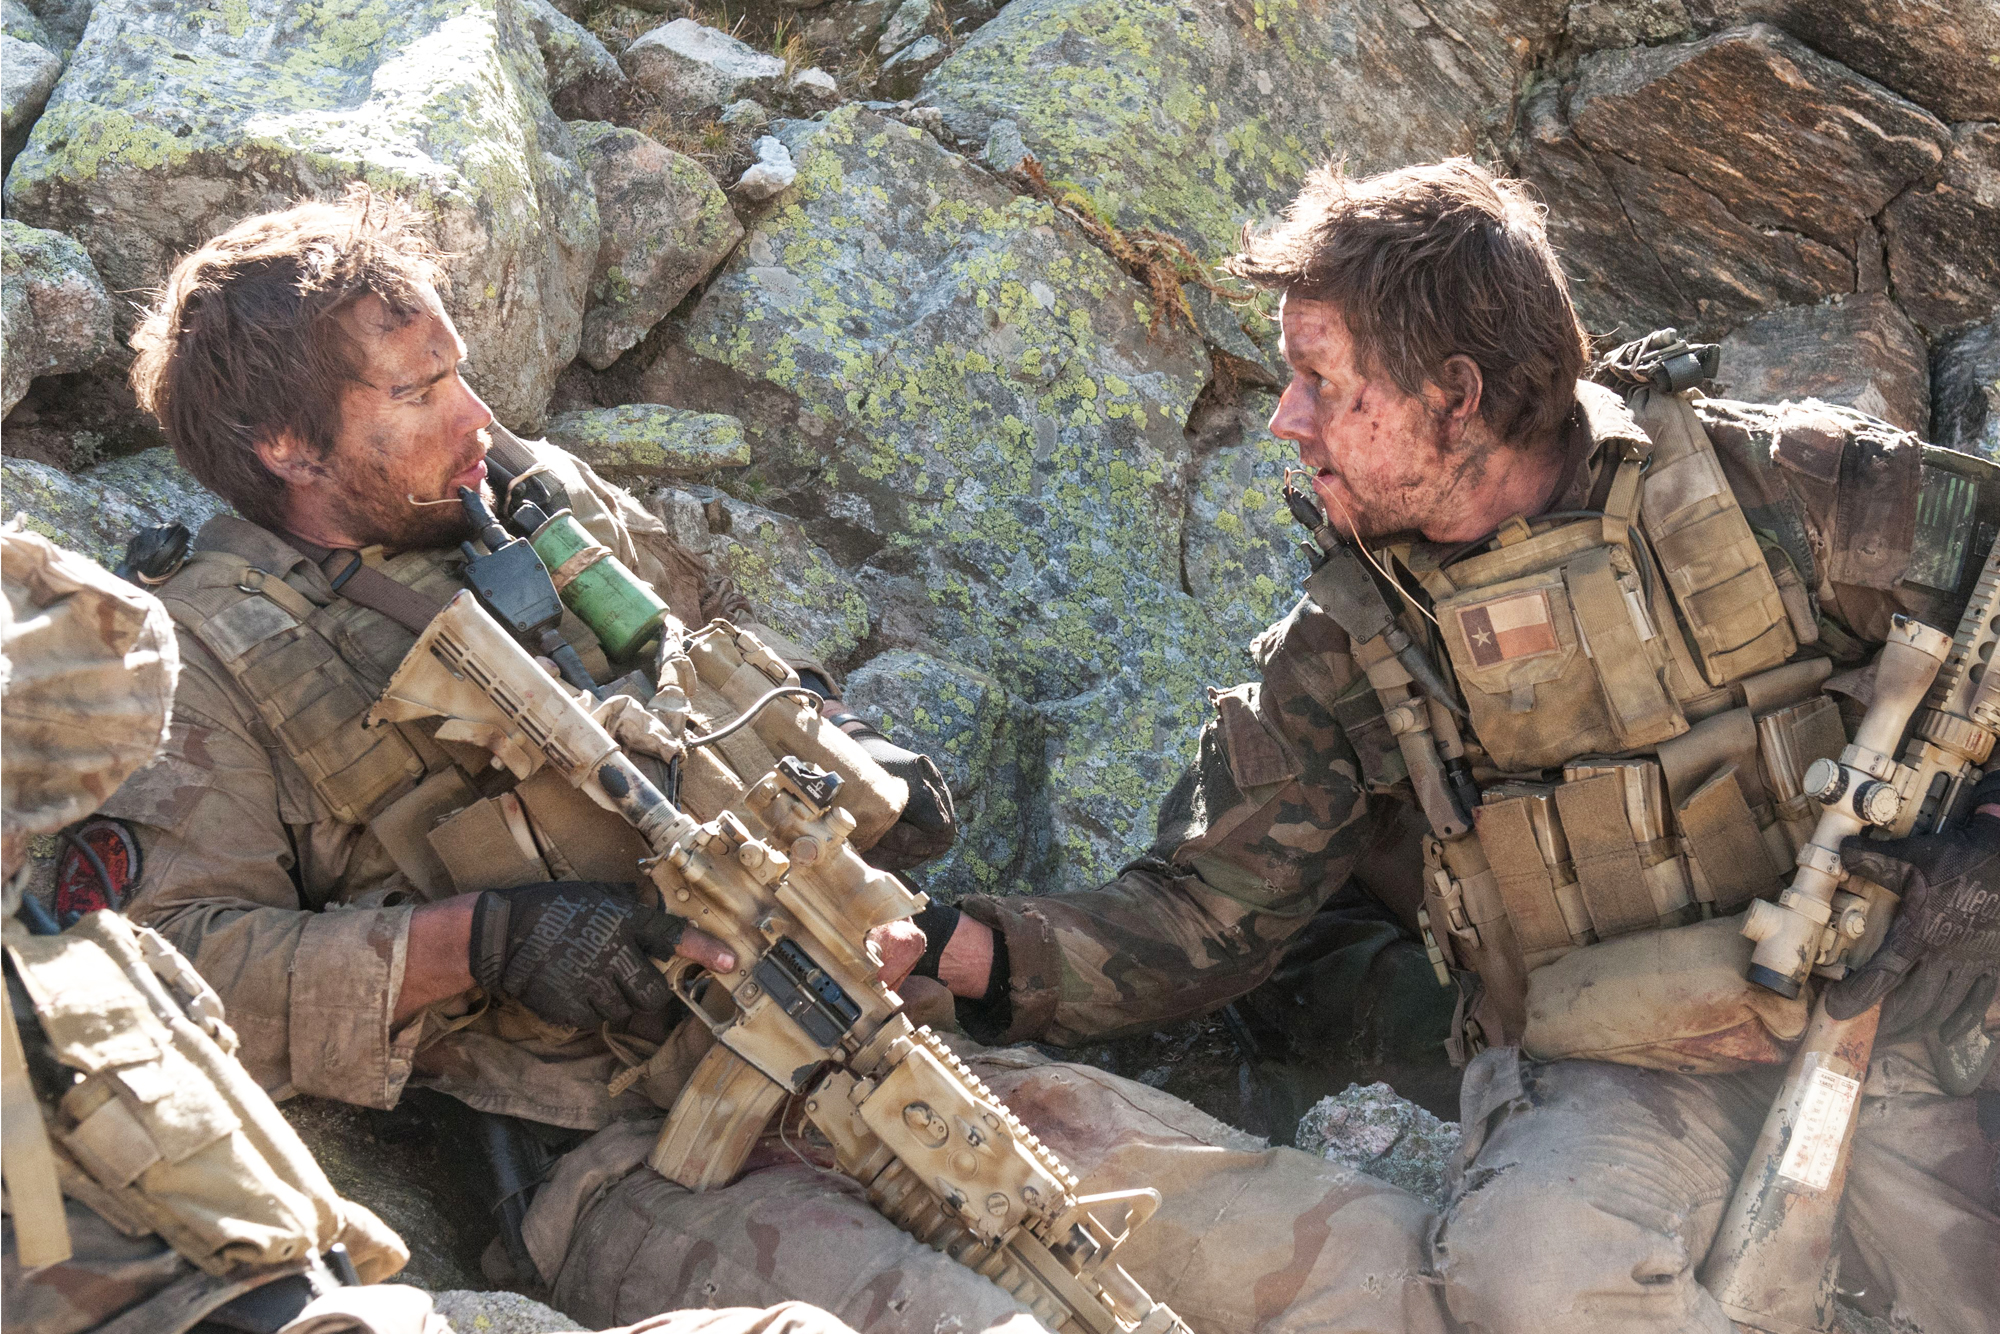 Taylor Kitsch, left, and Mark Wahlberg play Navy SEALs in Lone Survivor. (Photo: Gregory R. Peters/Universal Pictures)